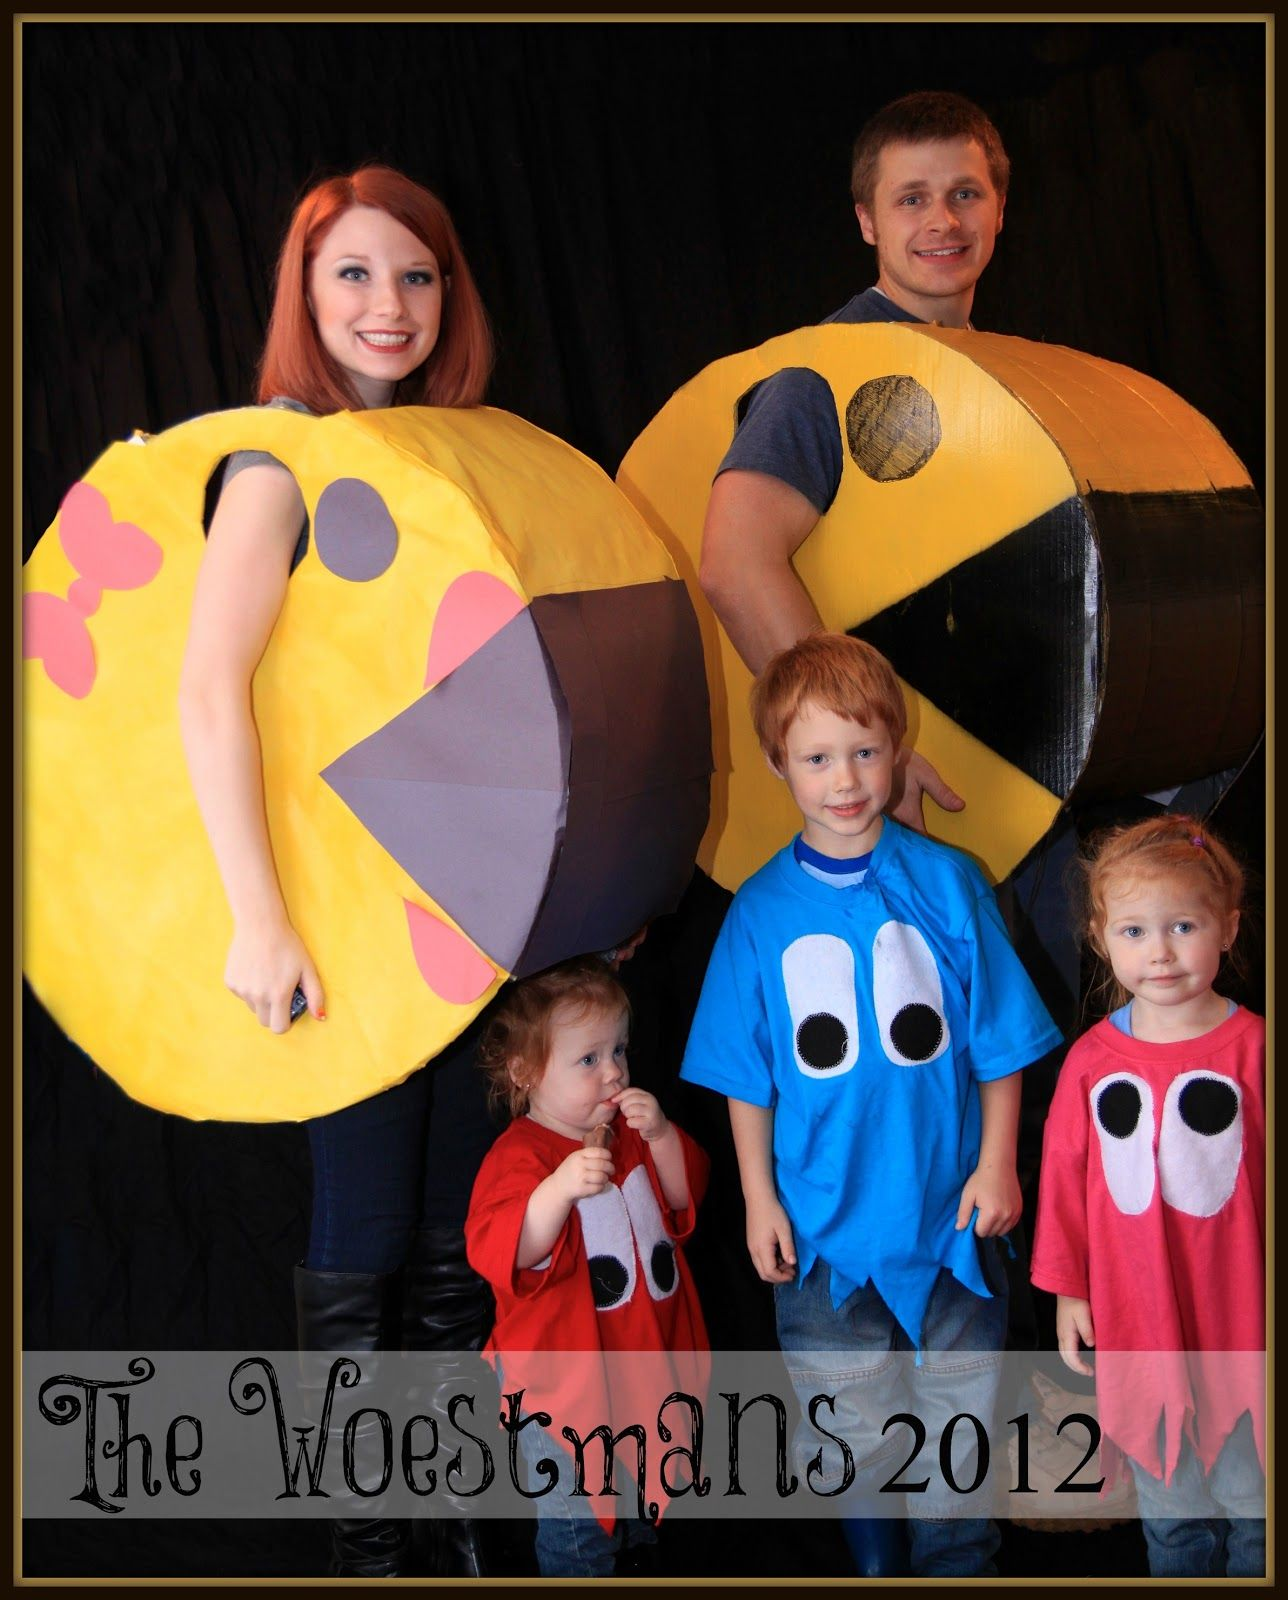 Pacman and Ghosts Family Costume Family Halloween Costumes  sc 1 st  Pinterest & 15 Fabulous Family Costume Ideas | Costumes Halloween costumes and ...